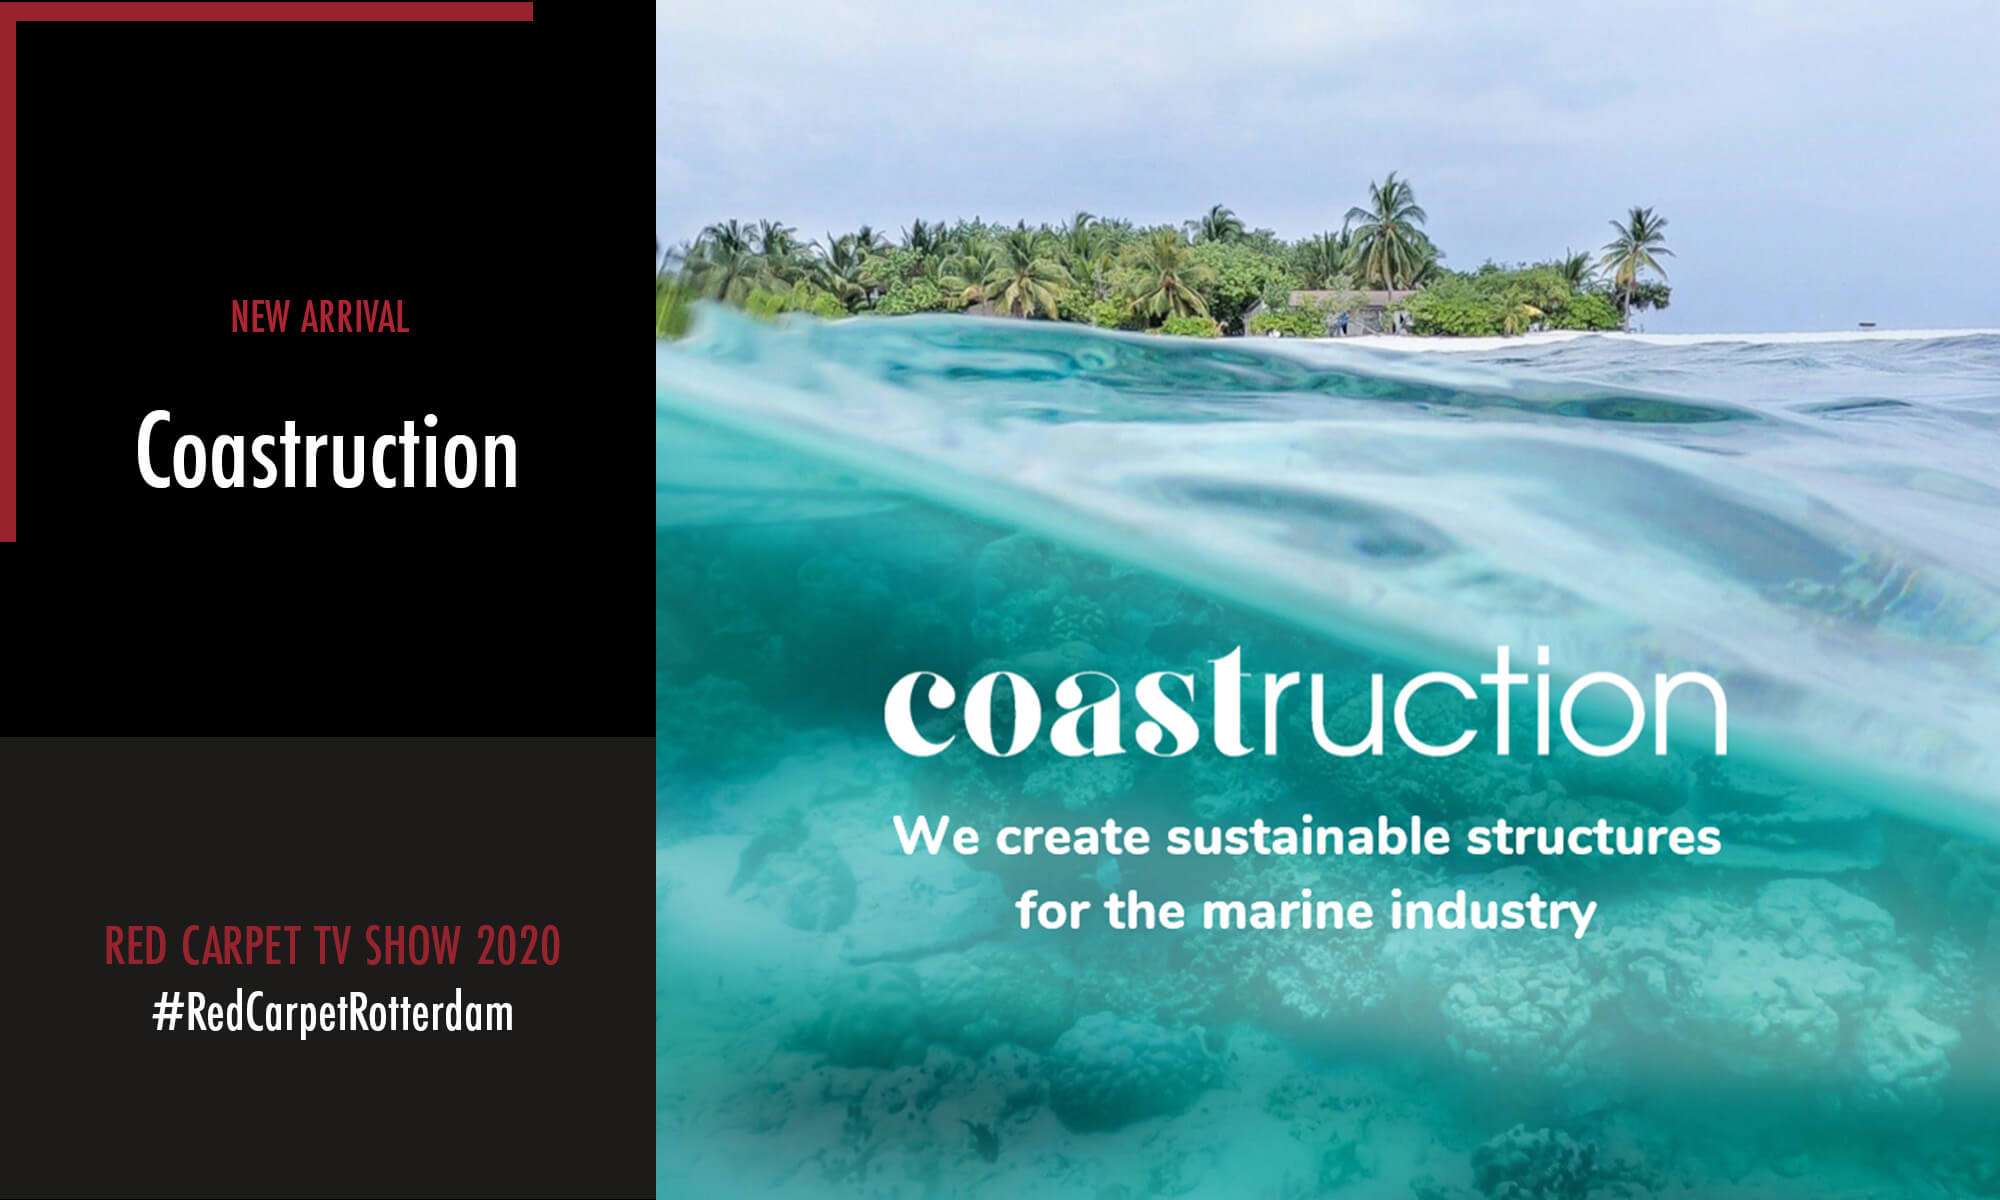 Coastruction is one of the new arrivals participating in the Red Carpet TV Show 2020